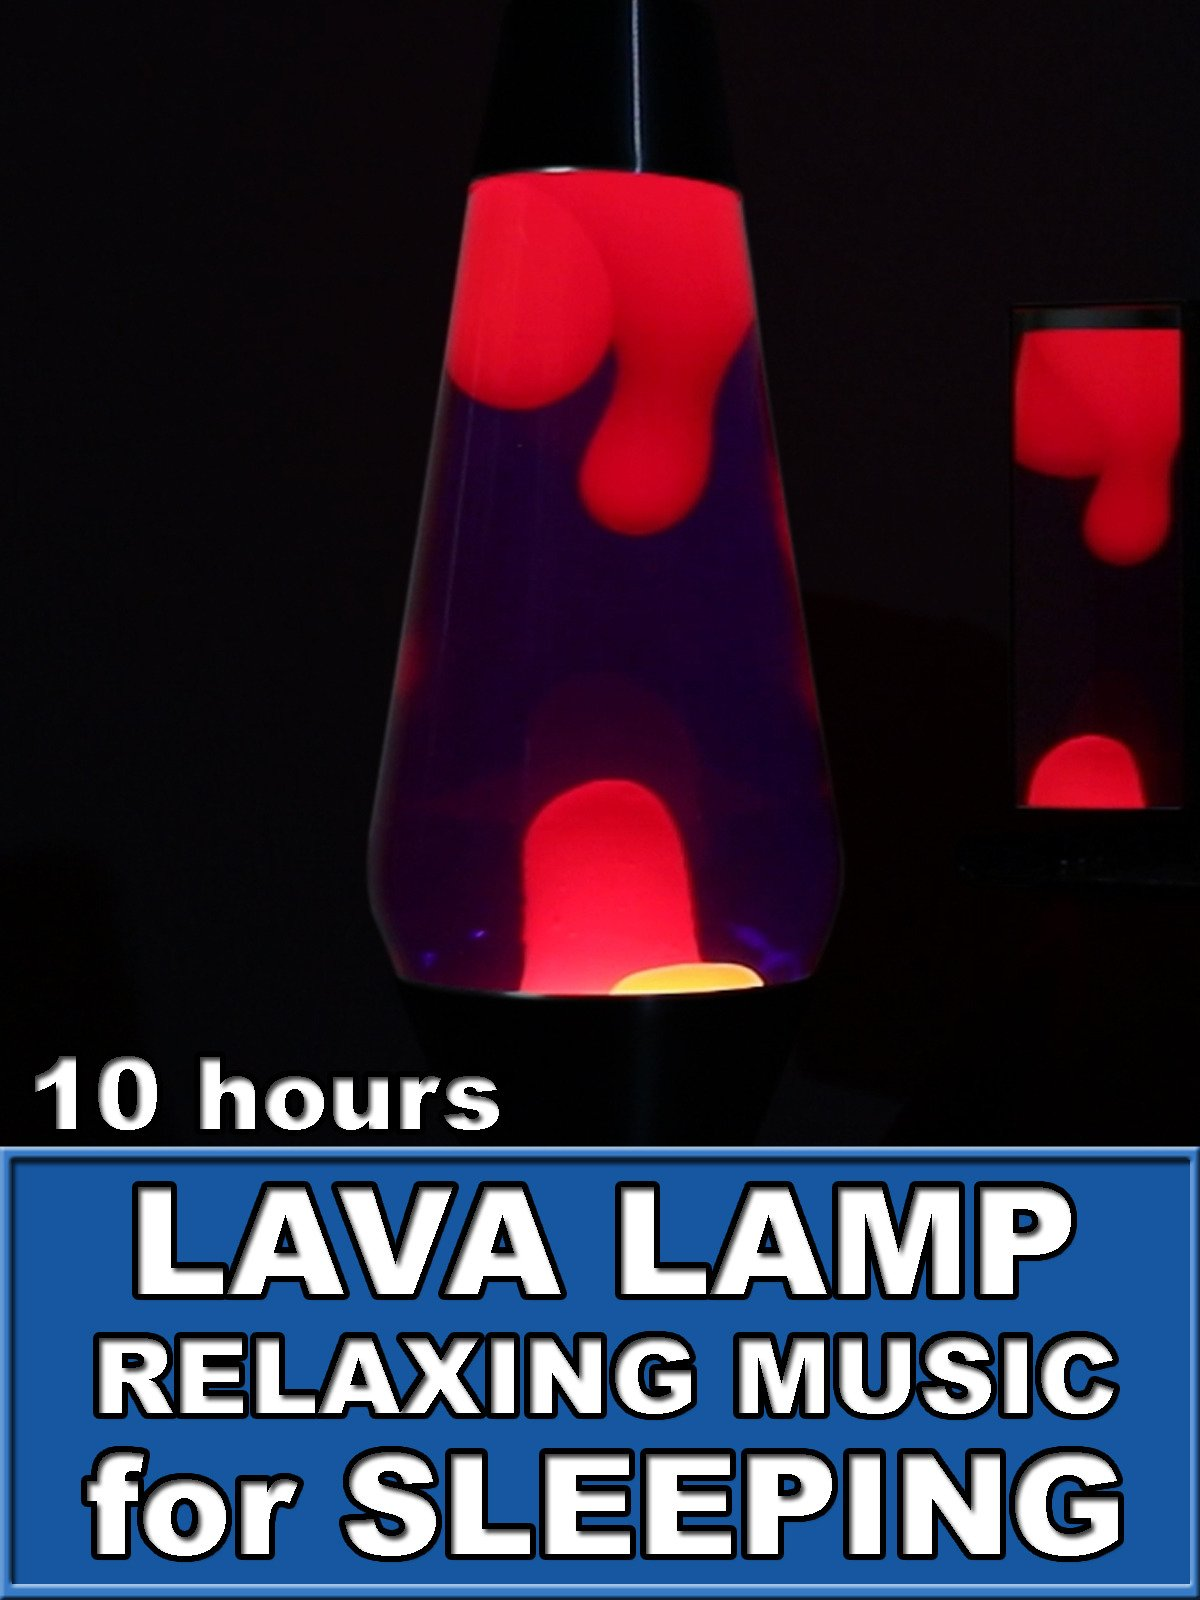 Lava Lamp Relaxing Music for Sleeping 10 Hours